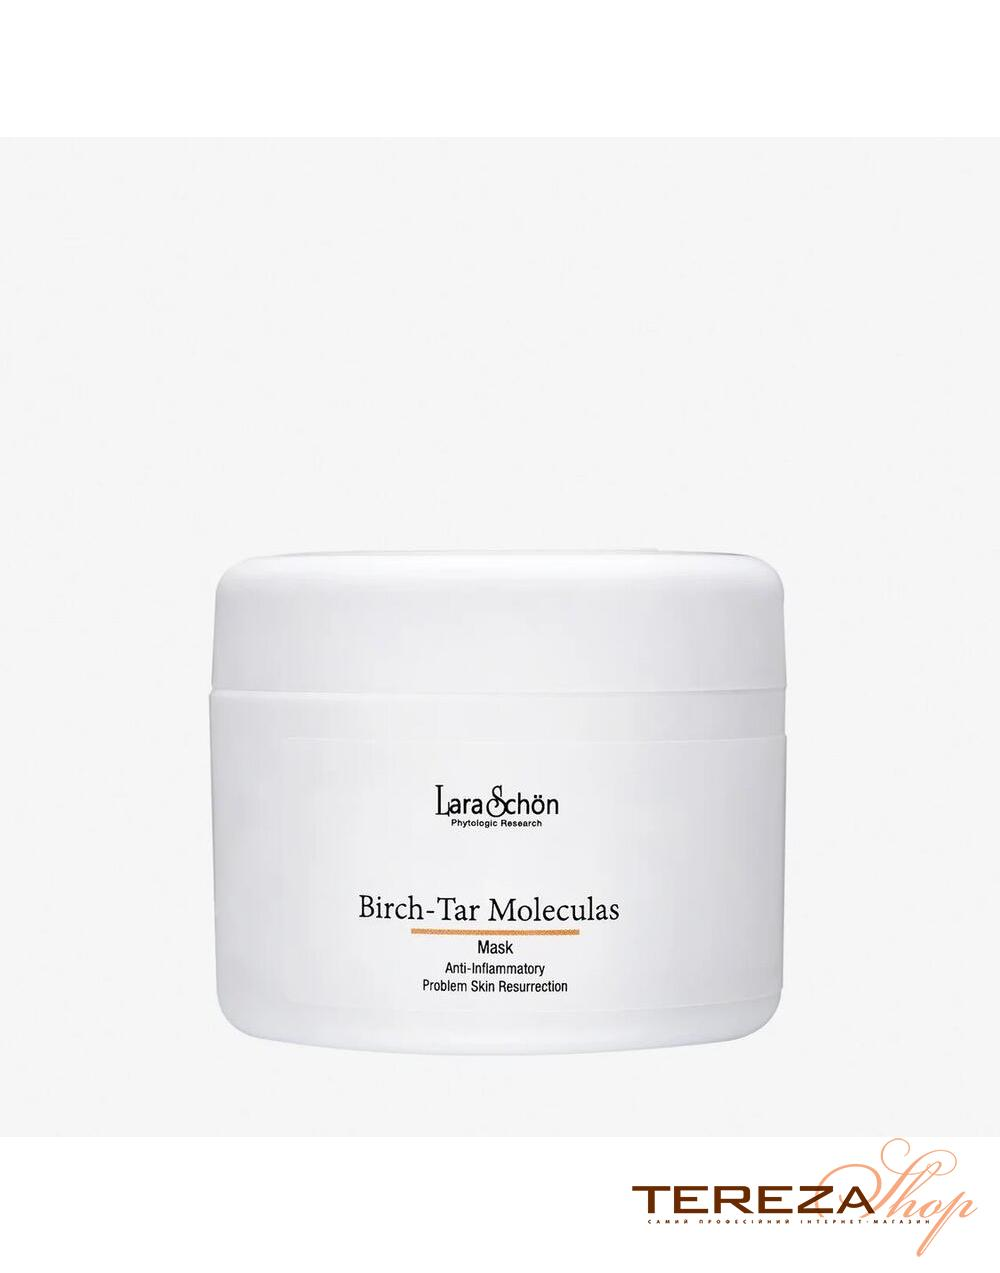 Birch Tar Molecula Mask 250ml LARA SCHОN | Tereza Shop